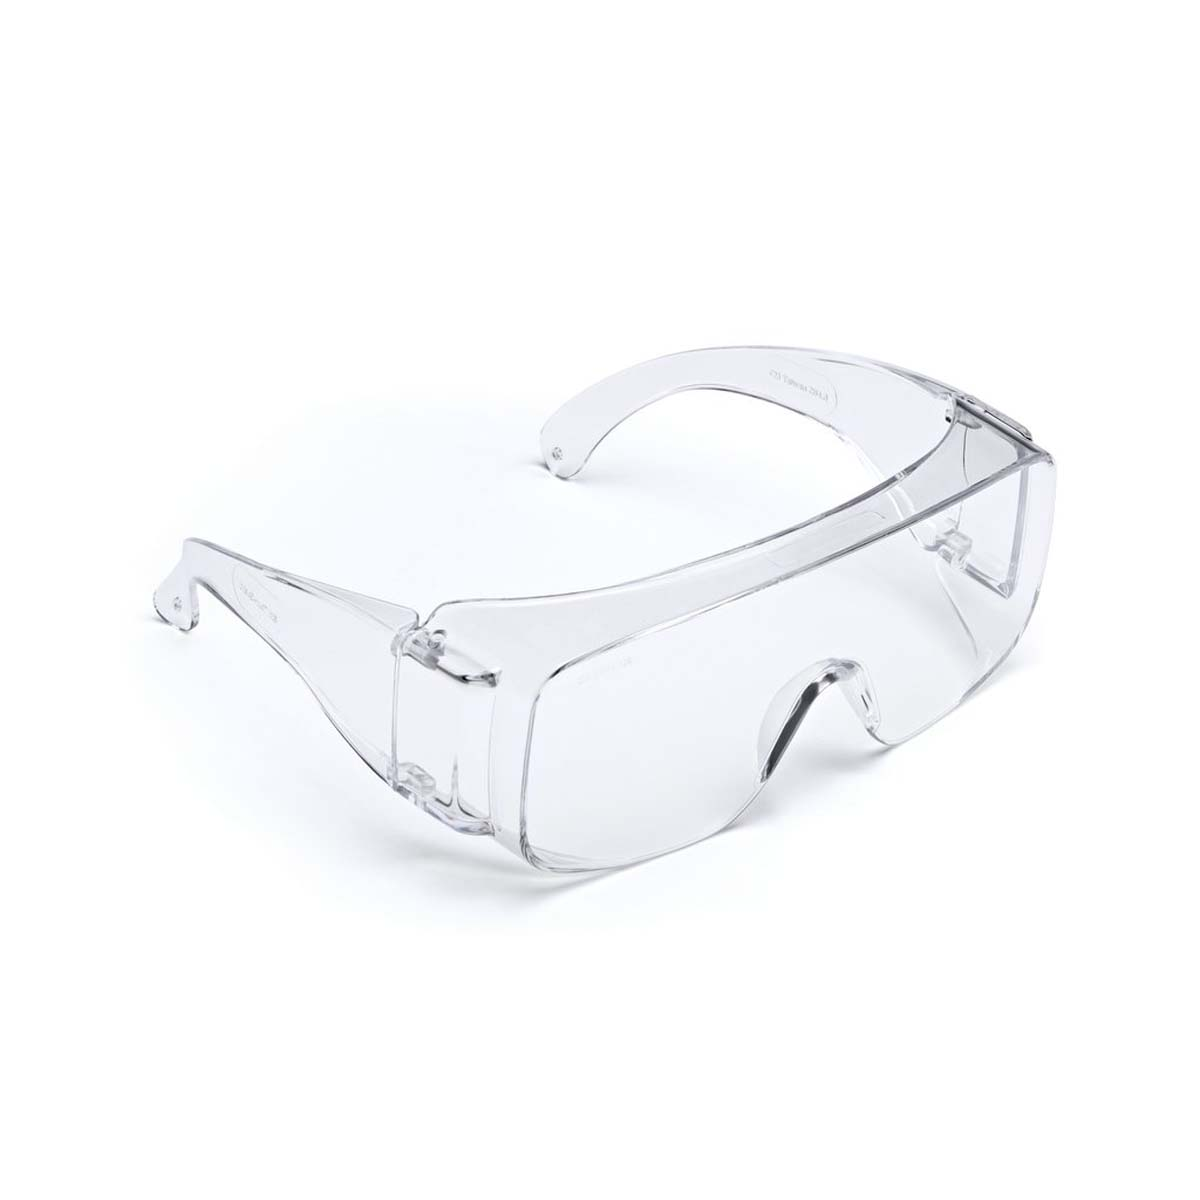 "3Mâ""¢ Tour-Guardâ""¢ V Protective Eyewear, TGV01-20 Clear, Dispenser Box, 20/box, 5 box/case"